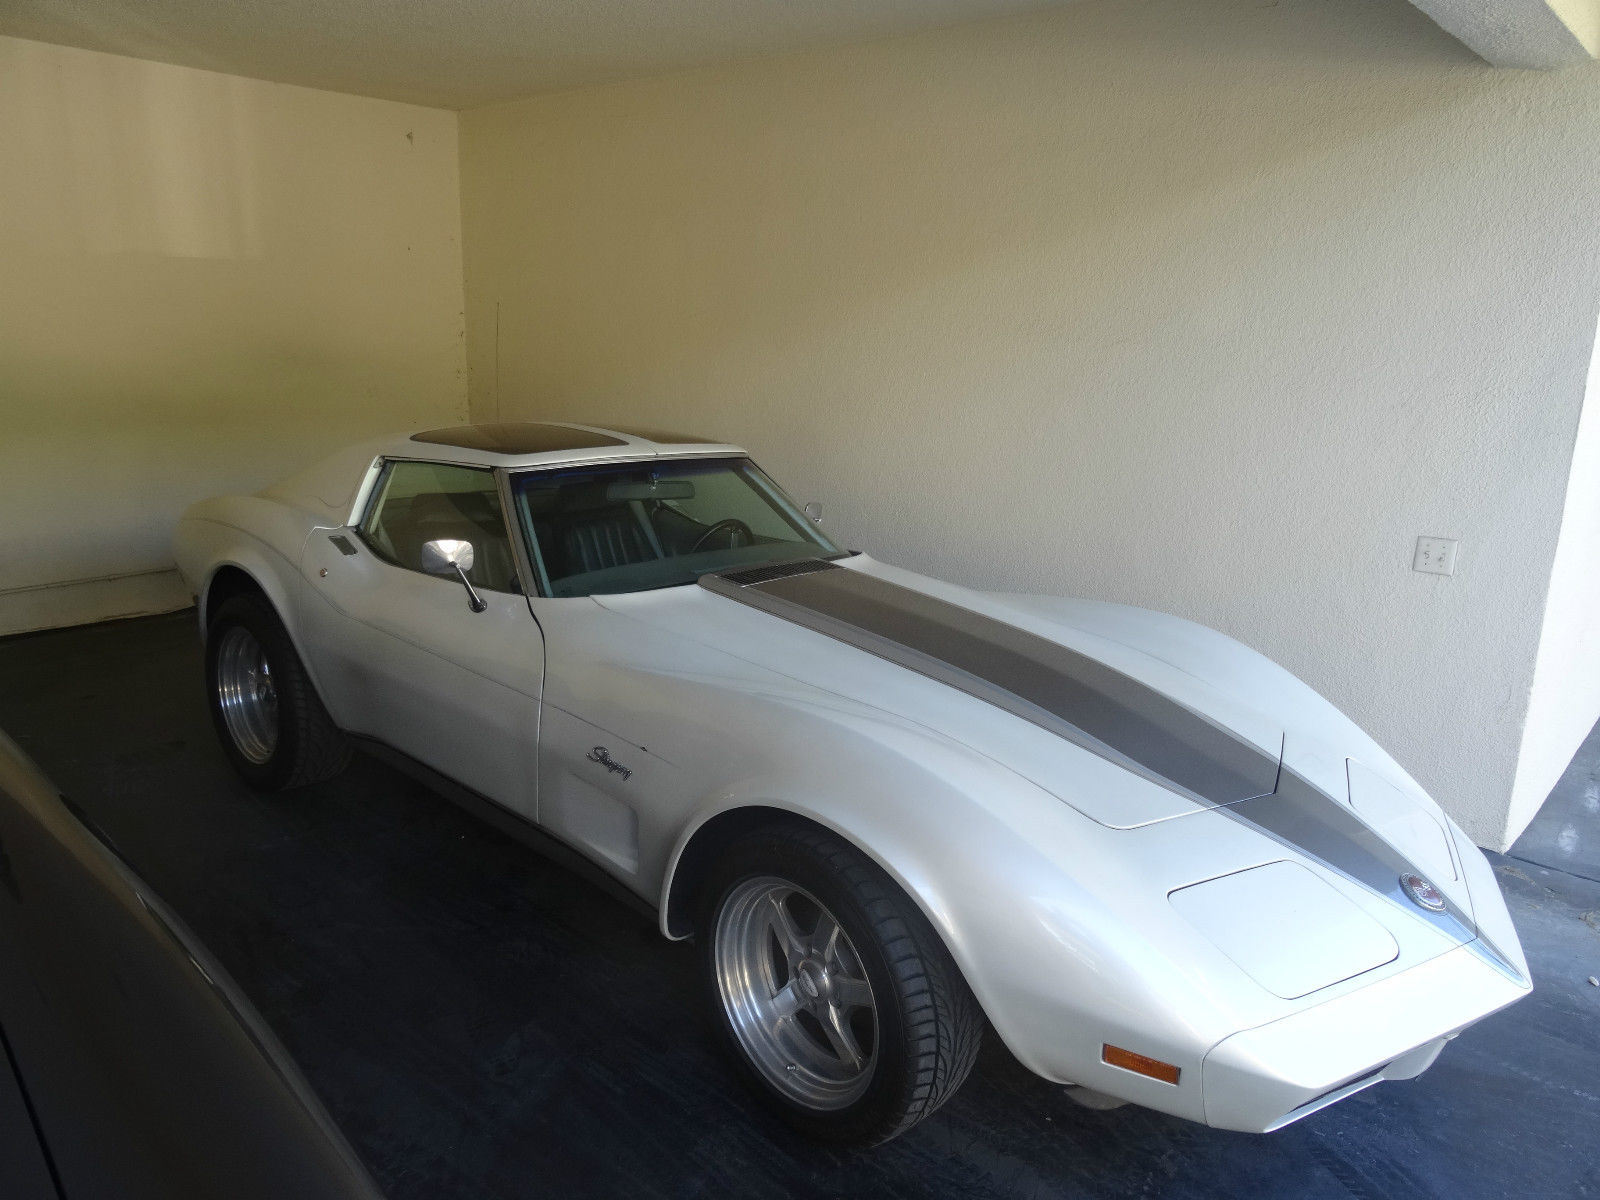 1974 Chevrolet Corvette T-Top targa